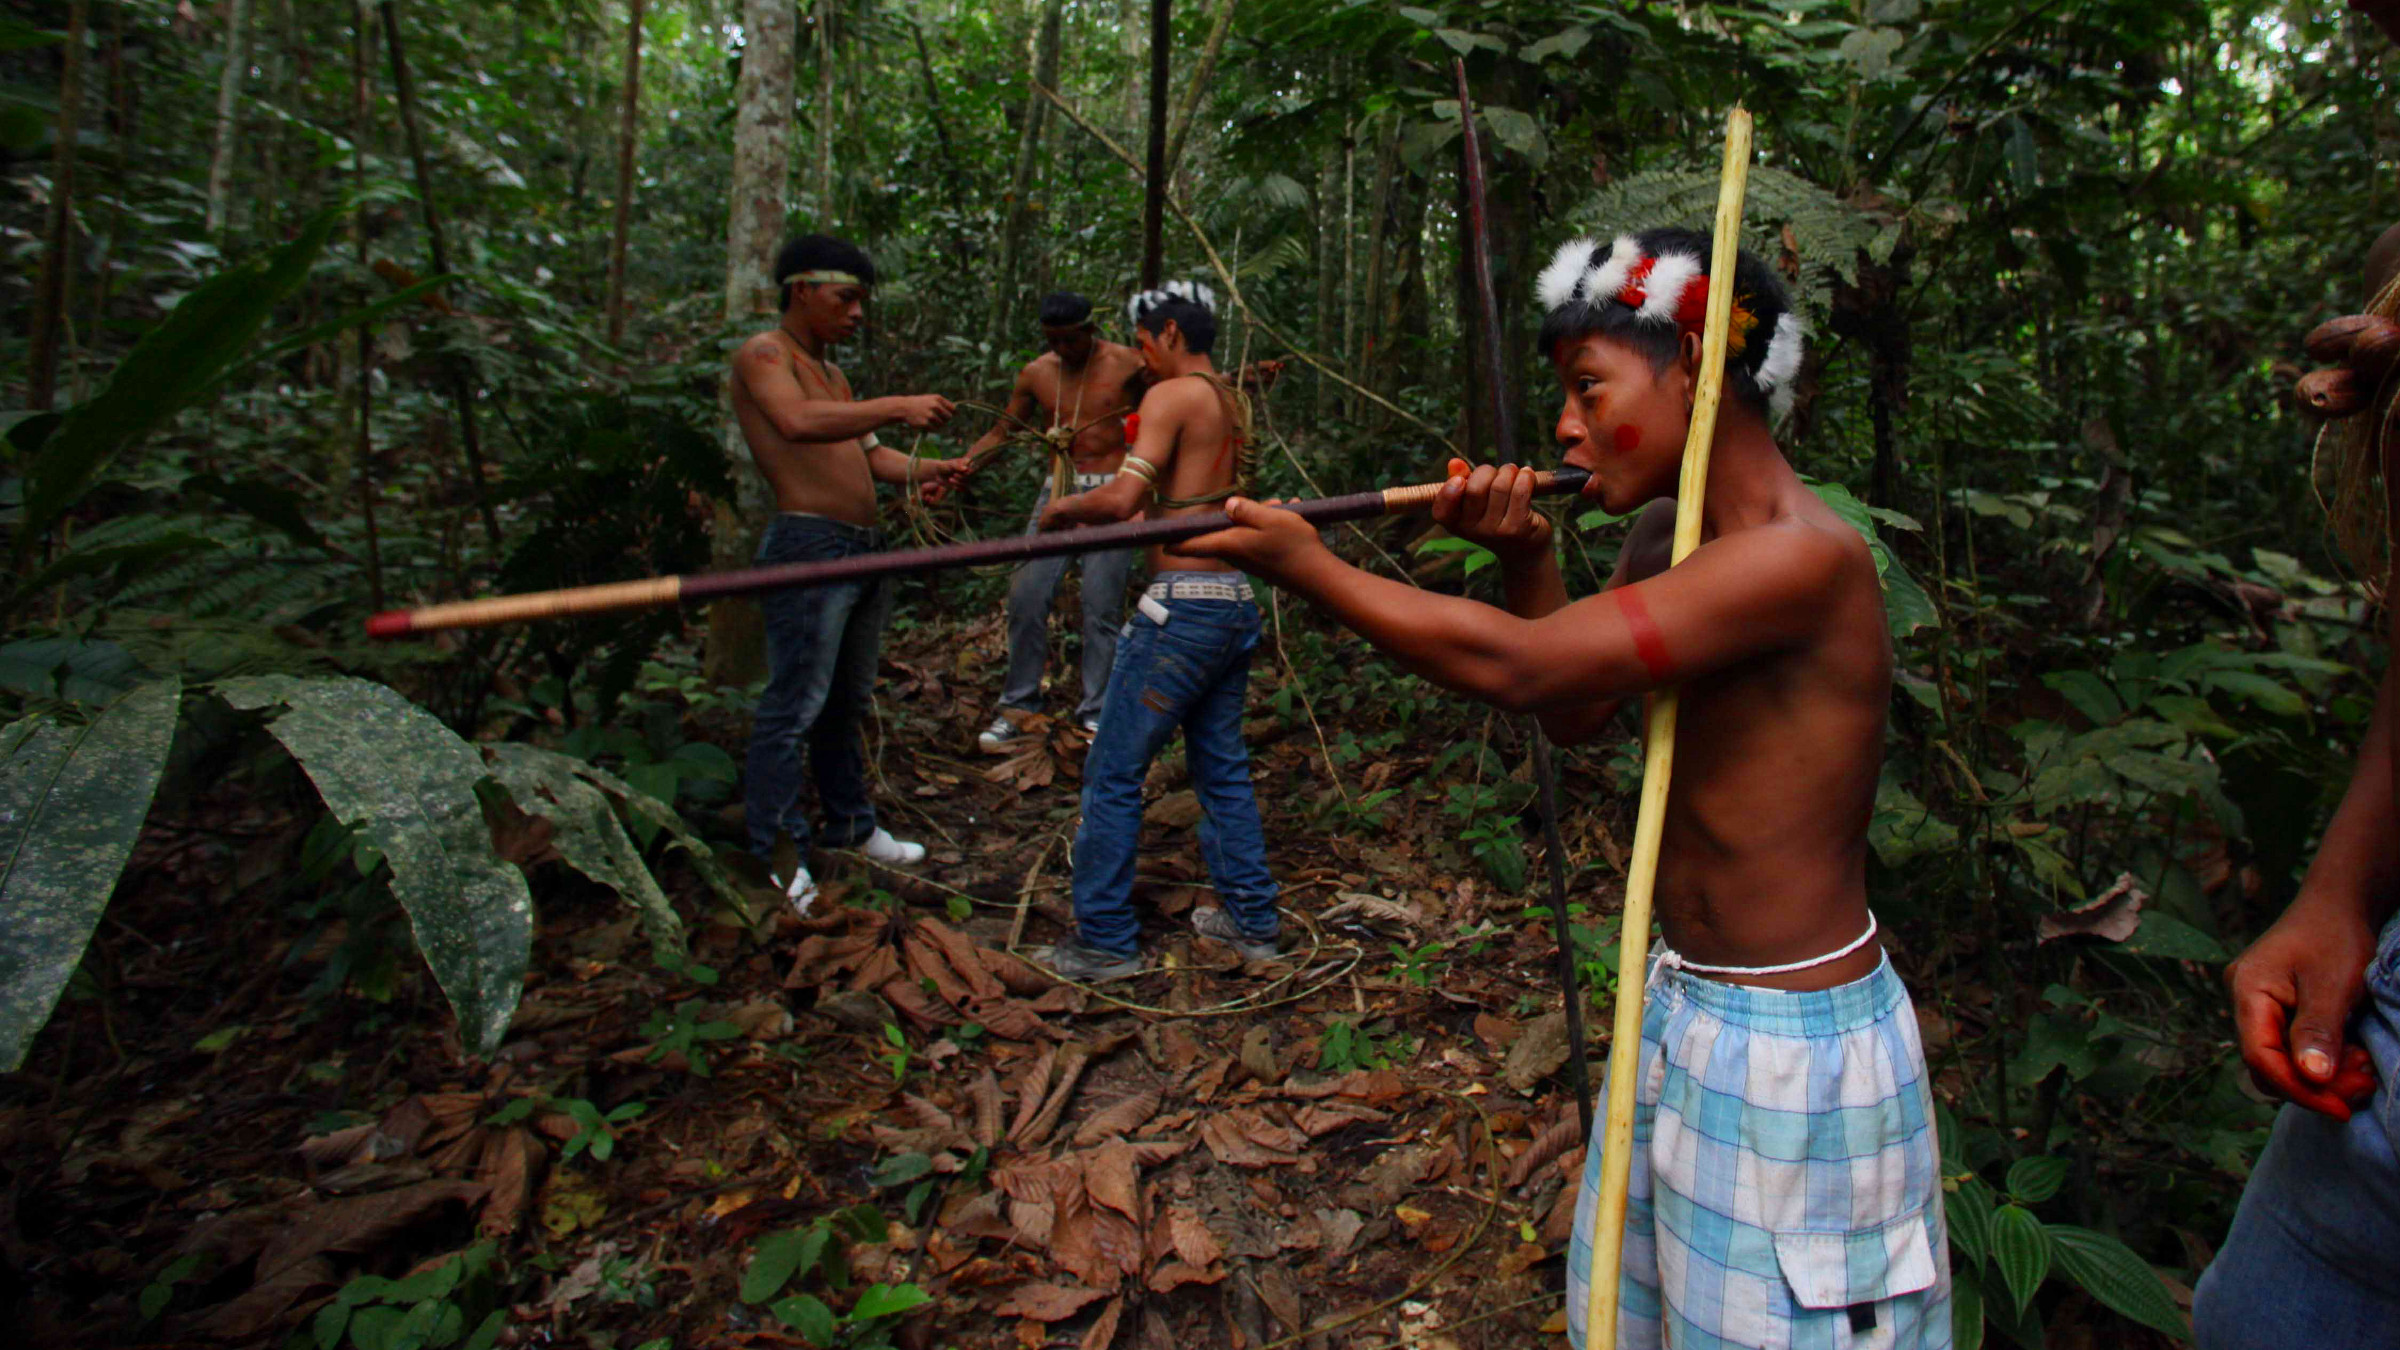 A Waorani indigenous youth practices using a blowpipe in Yasuni National Park in the Upper Napo Valley of the Western Amazon region in Ecuador, Saturday Aug. 21, 2010. Yasuni National Park, a UNESCO Biosphere Reserve since 1989 and home to the Tagaeri-Taromenane and Waorani indigenous communities, holds close to 1 billion barrels of crude. Since 2007 the government of Ecuador's President Rafael Correa has appealed to the international community to provide the Andean nation with funding in exchange for abandoning oil drilling in the reserve.